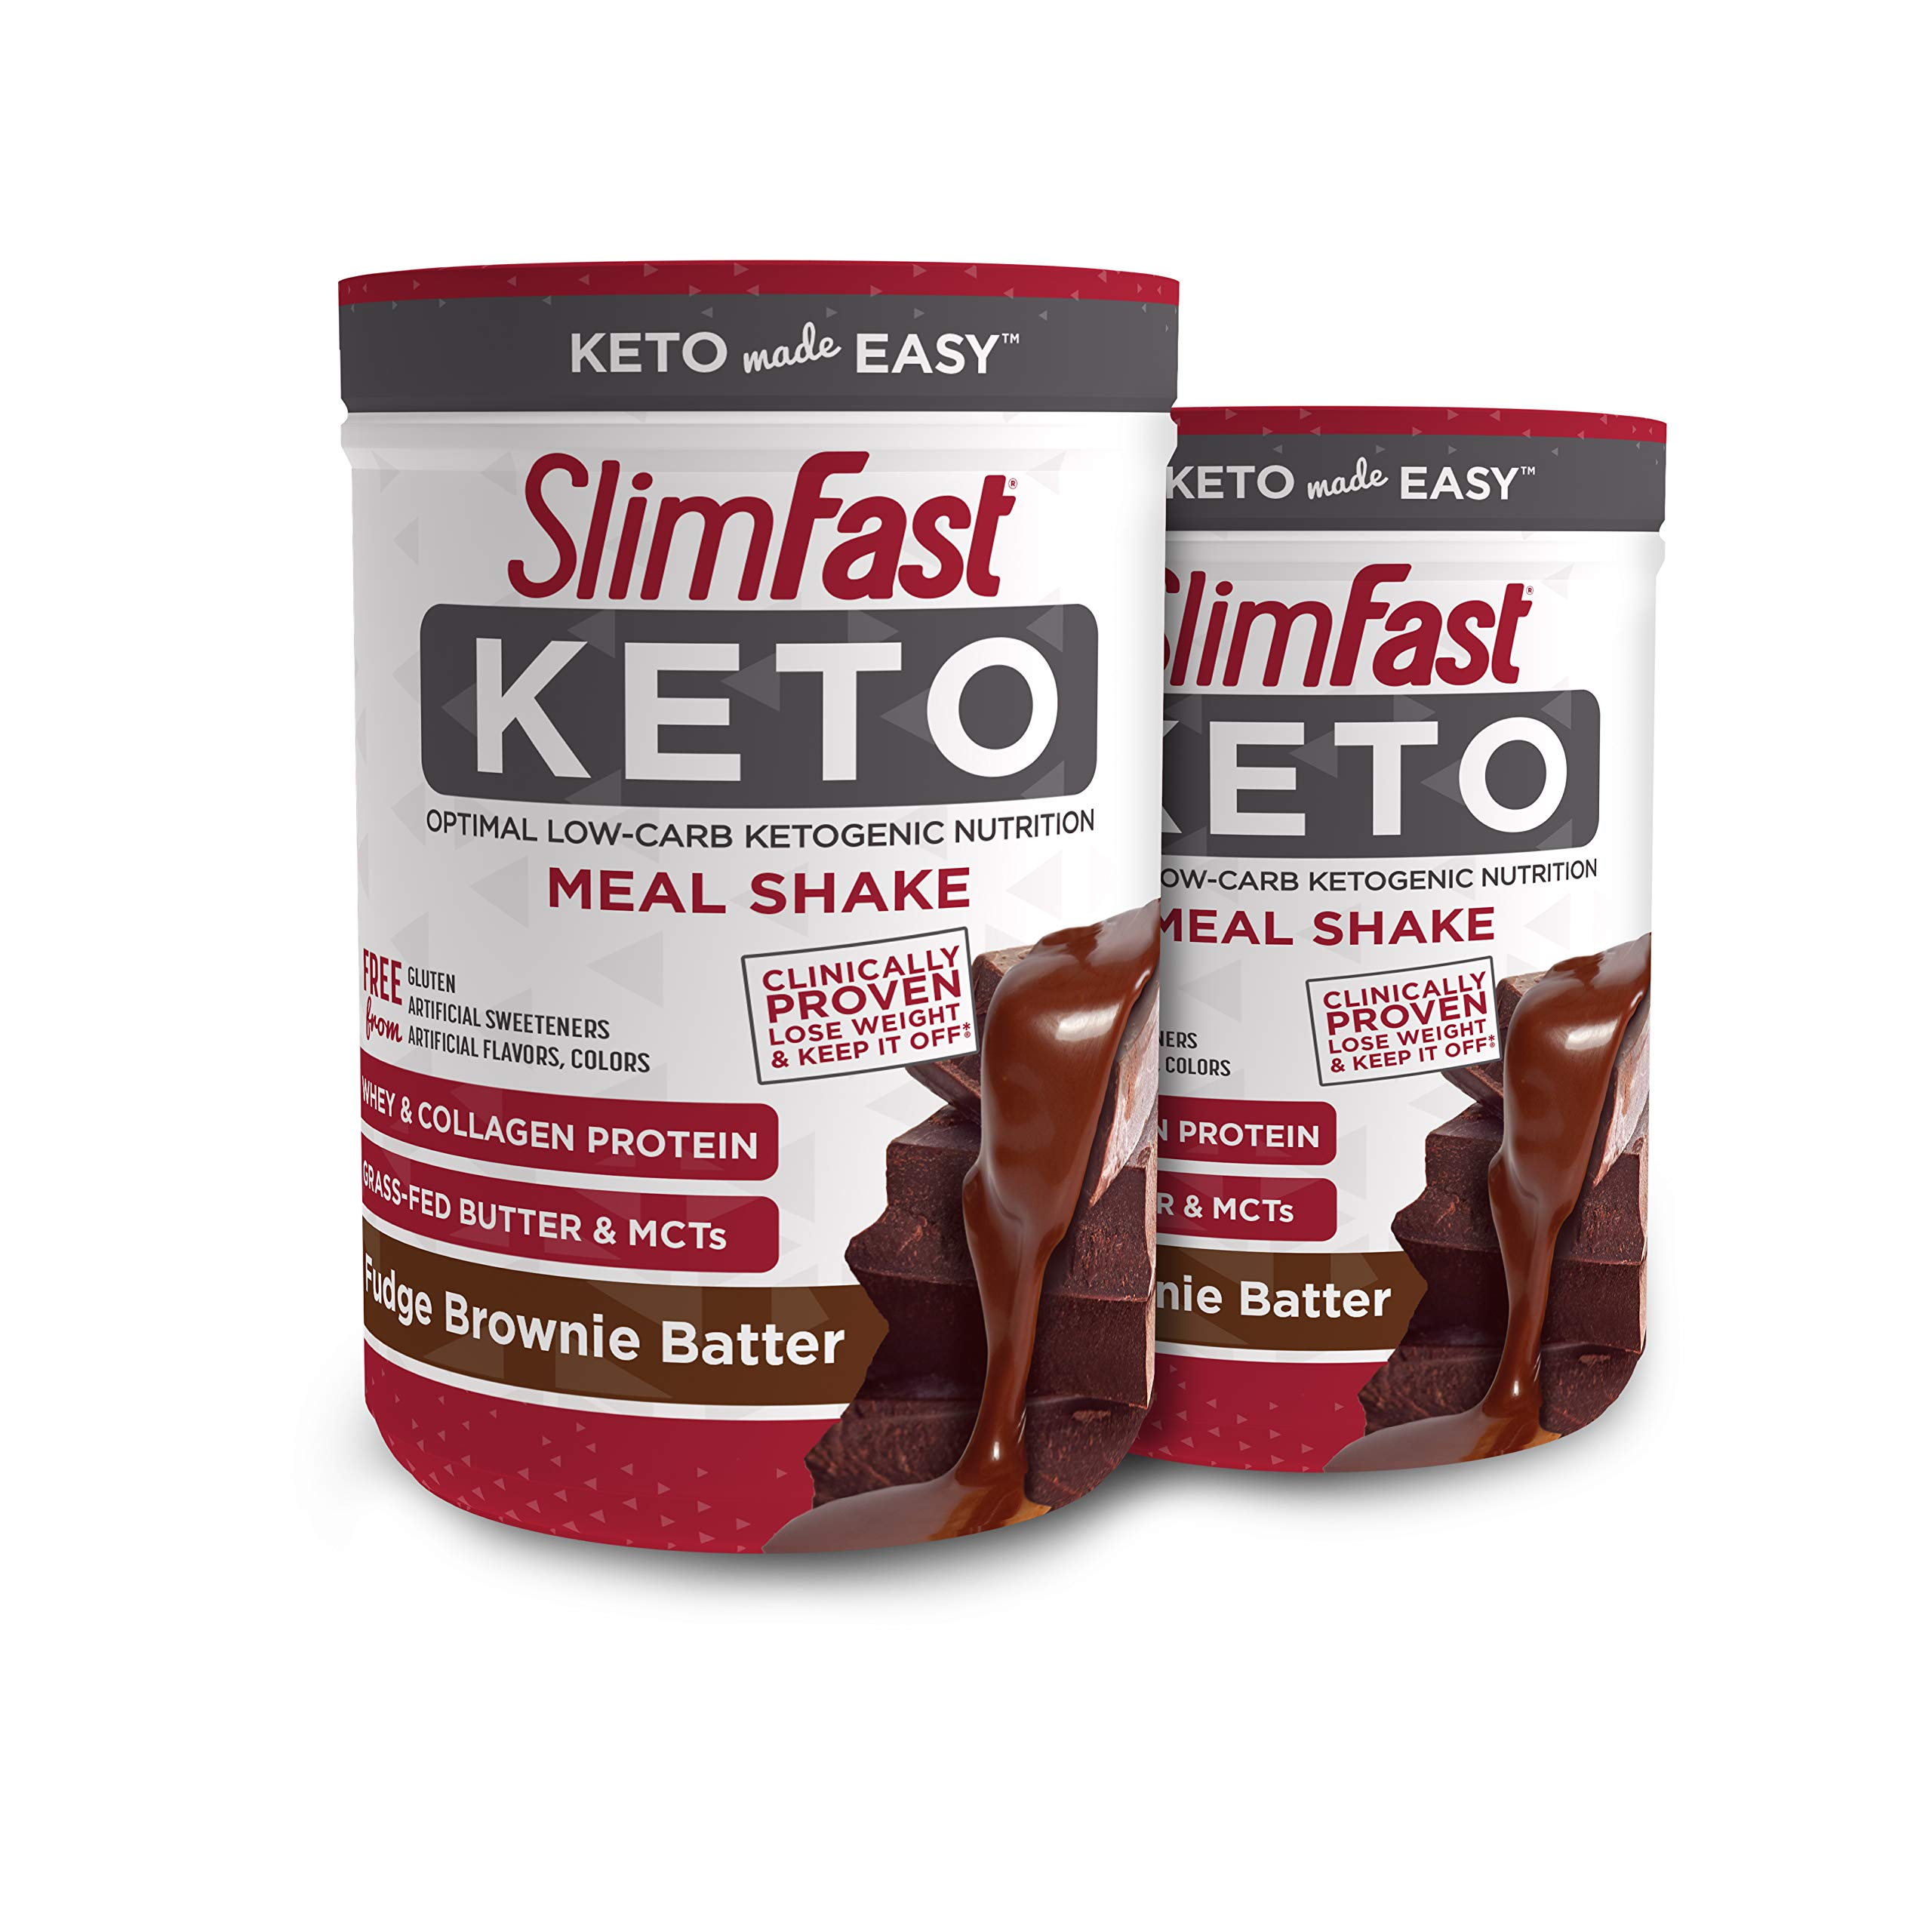 Slimfast Keto Meal Replacement Powder Fudge Brownie Batter, (20 Servings), 2 Count - Pack of 2 Canisters by SlimFast